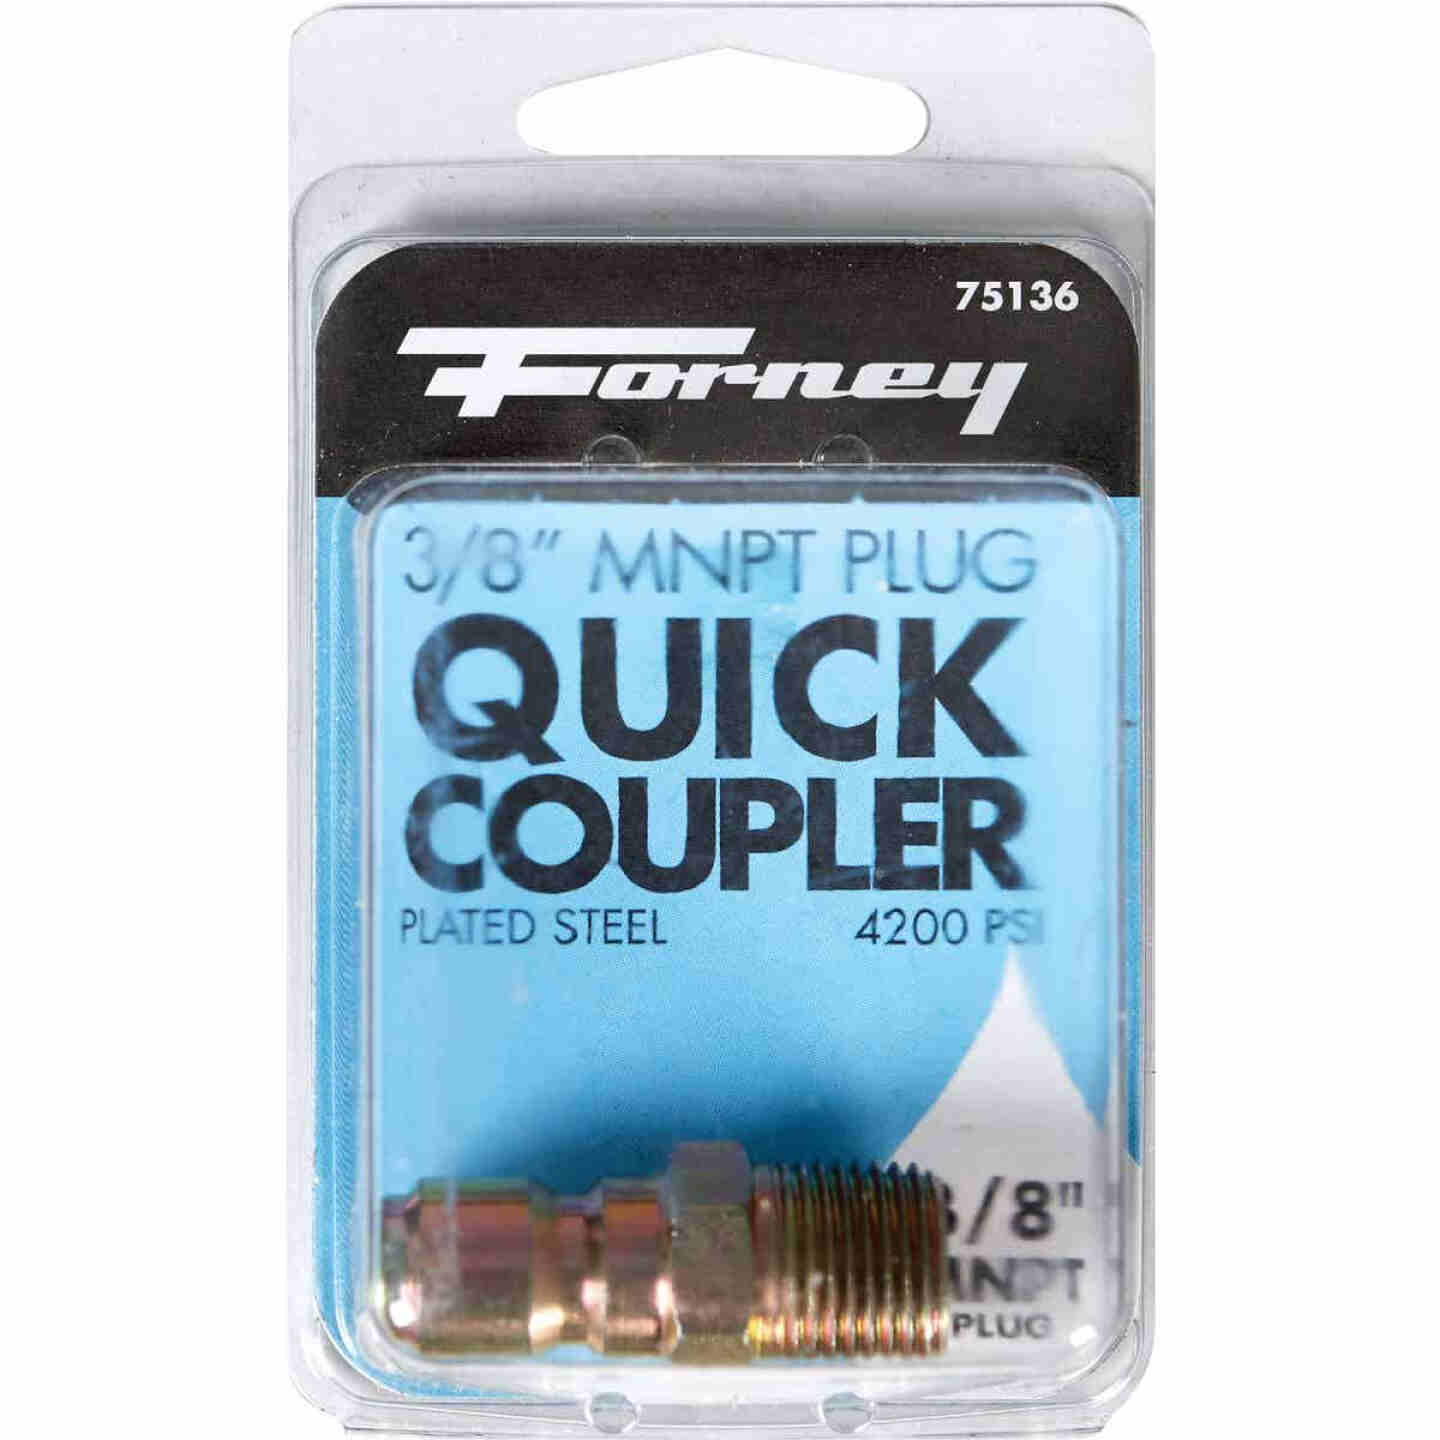 Forney 3/8 In. Male Quick Connect Pressure Washer Plug Image 2